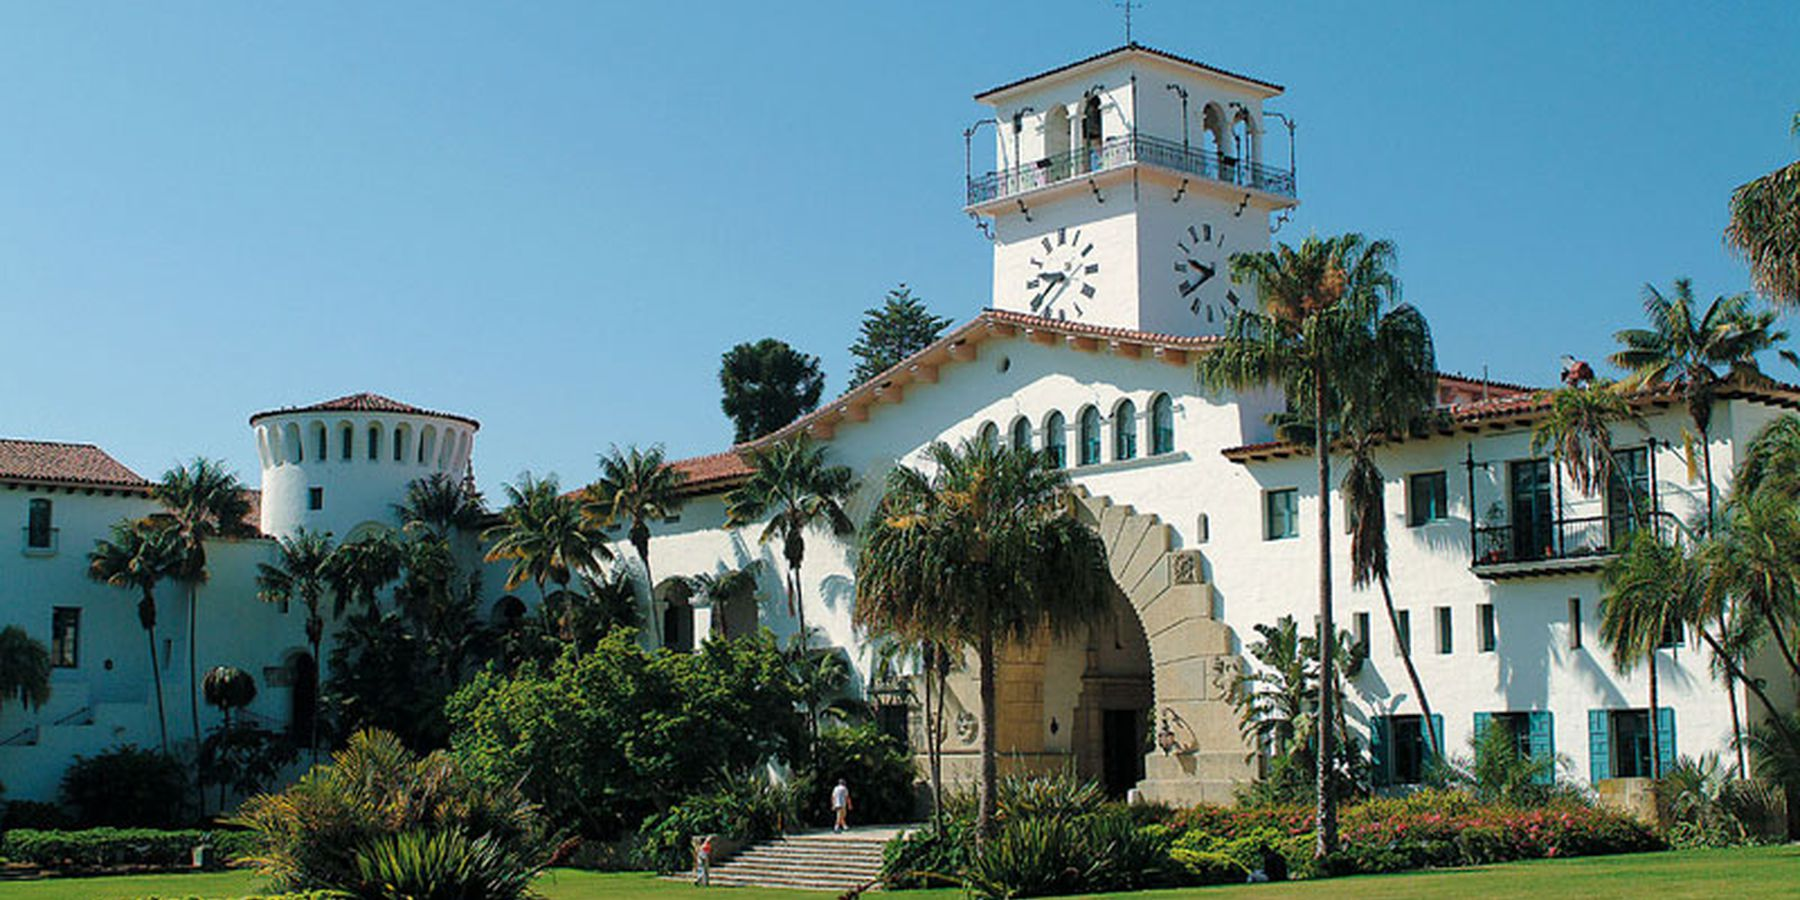 County Courthouse - Santa Barbara - California - Amerika - Doets Reizen